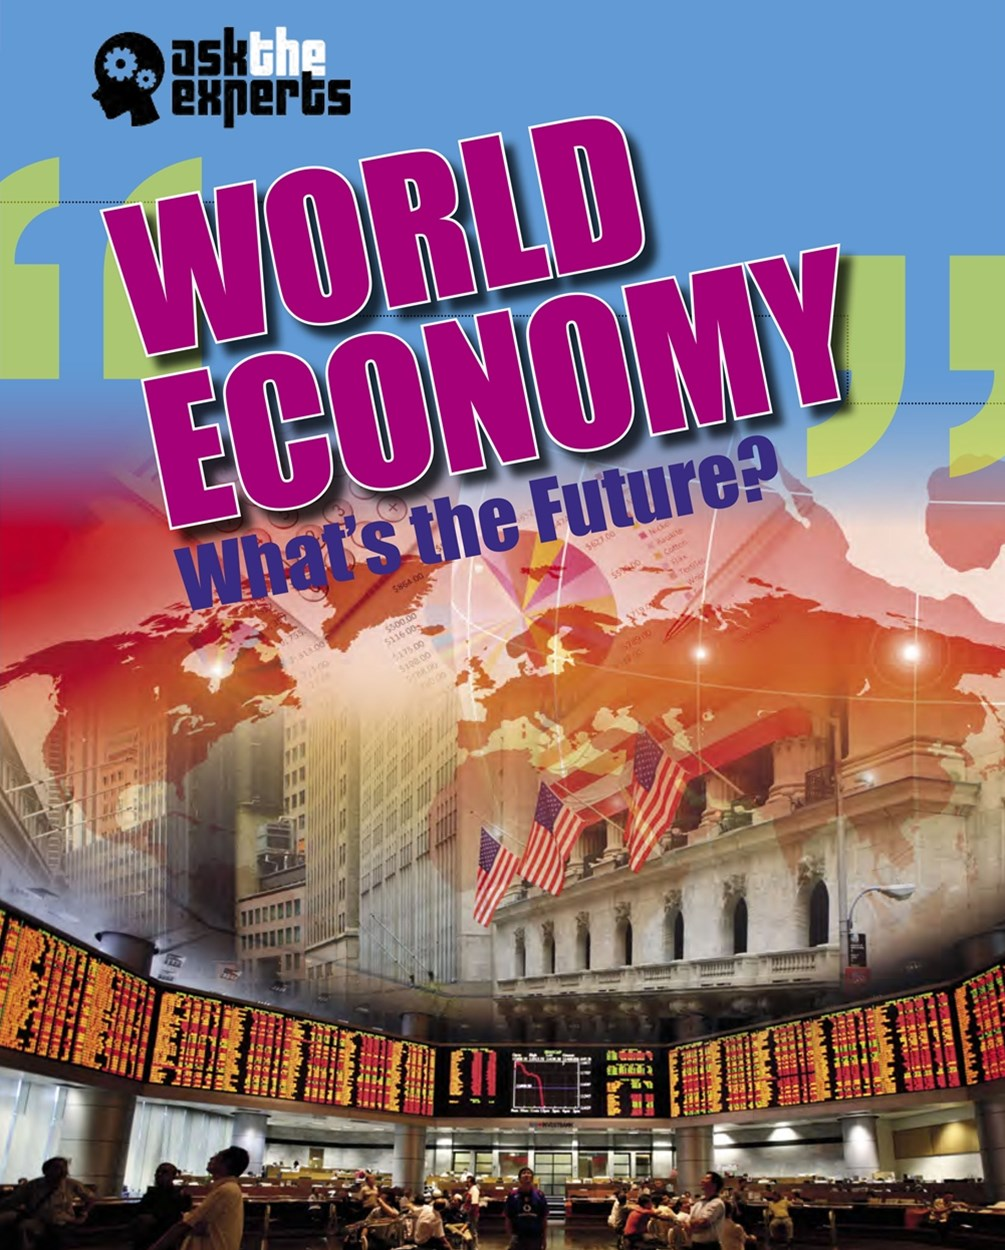 Ask the Experts: World Economy: What's the Future?